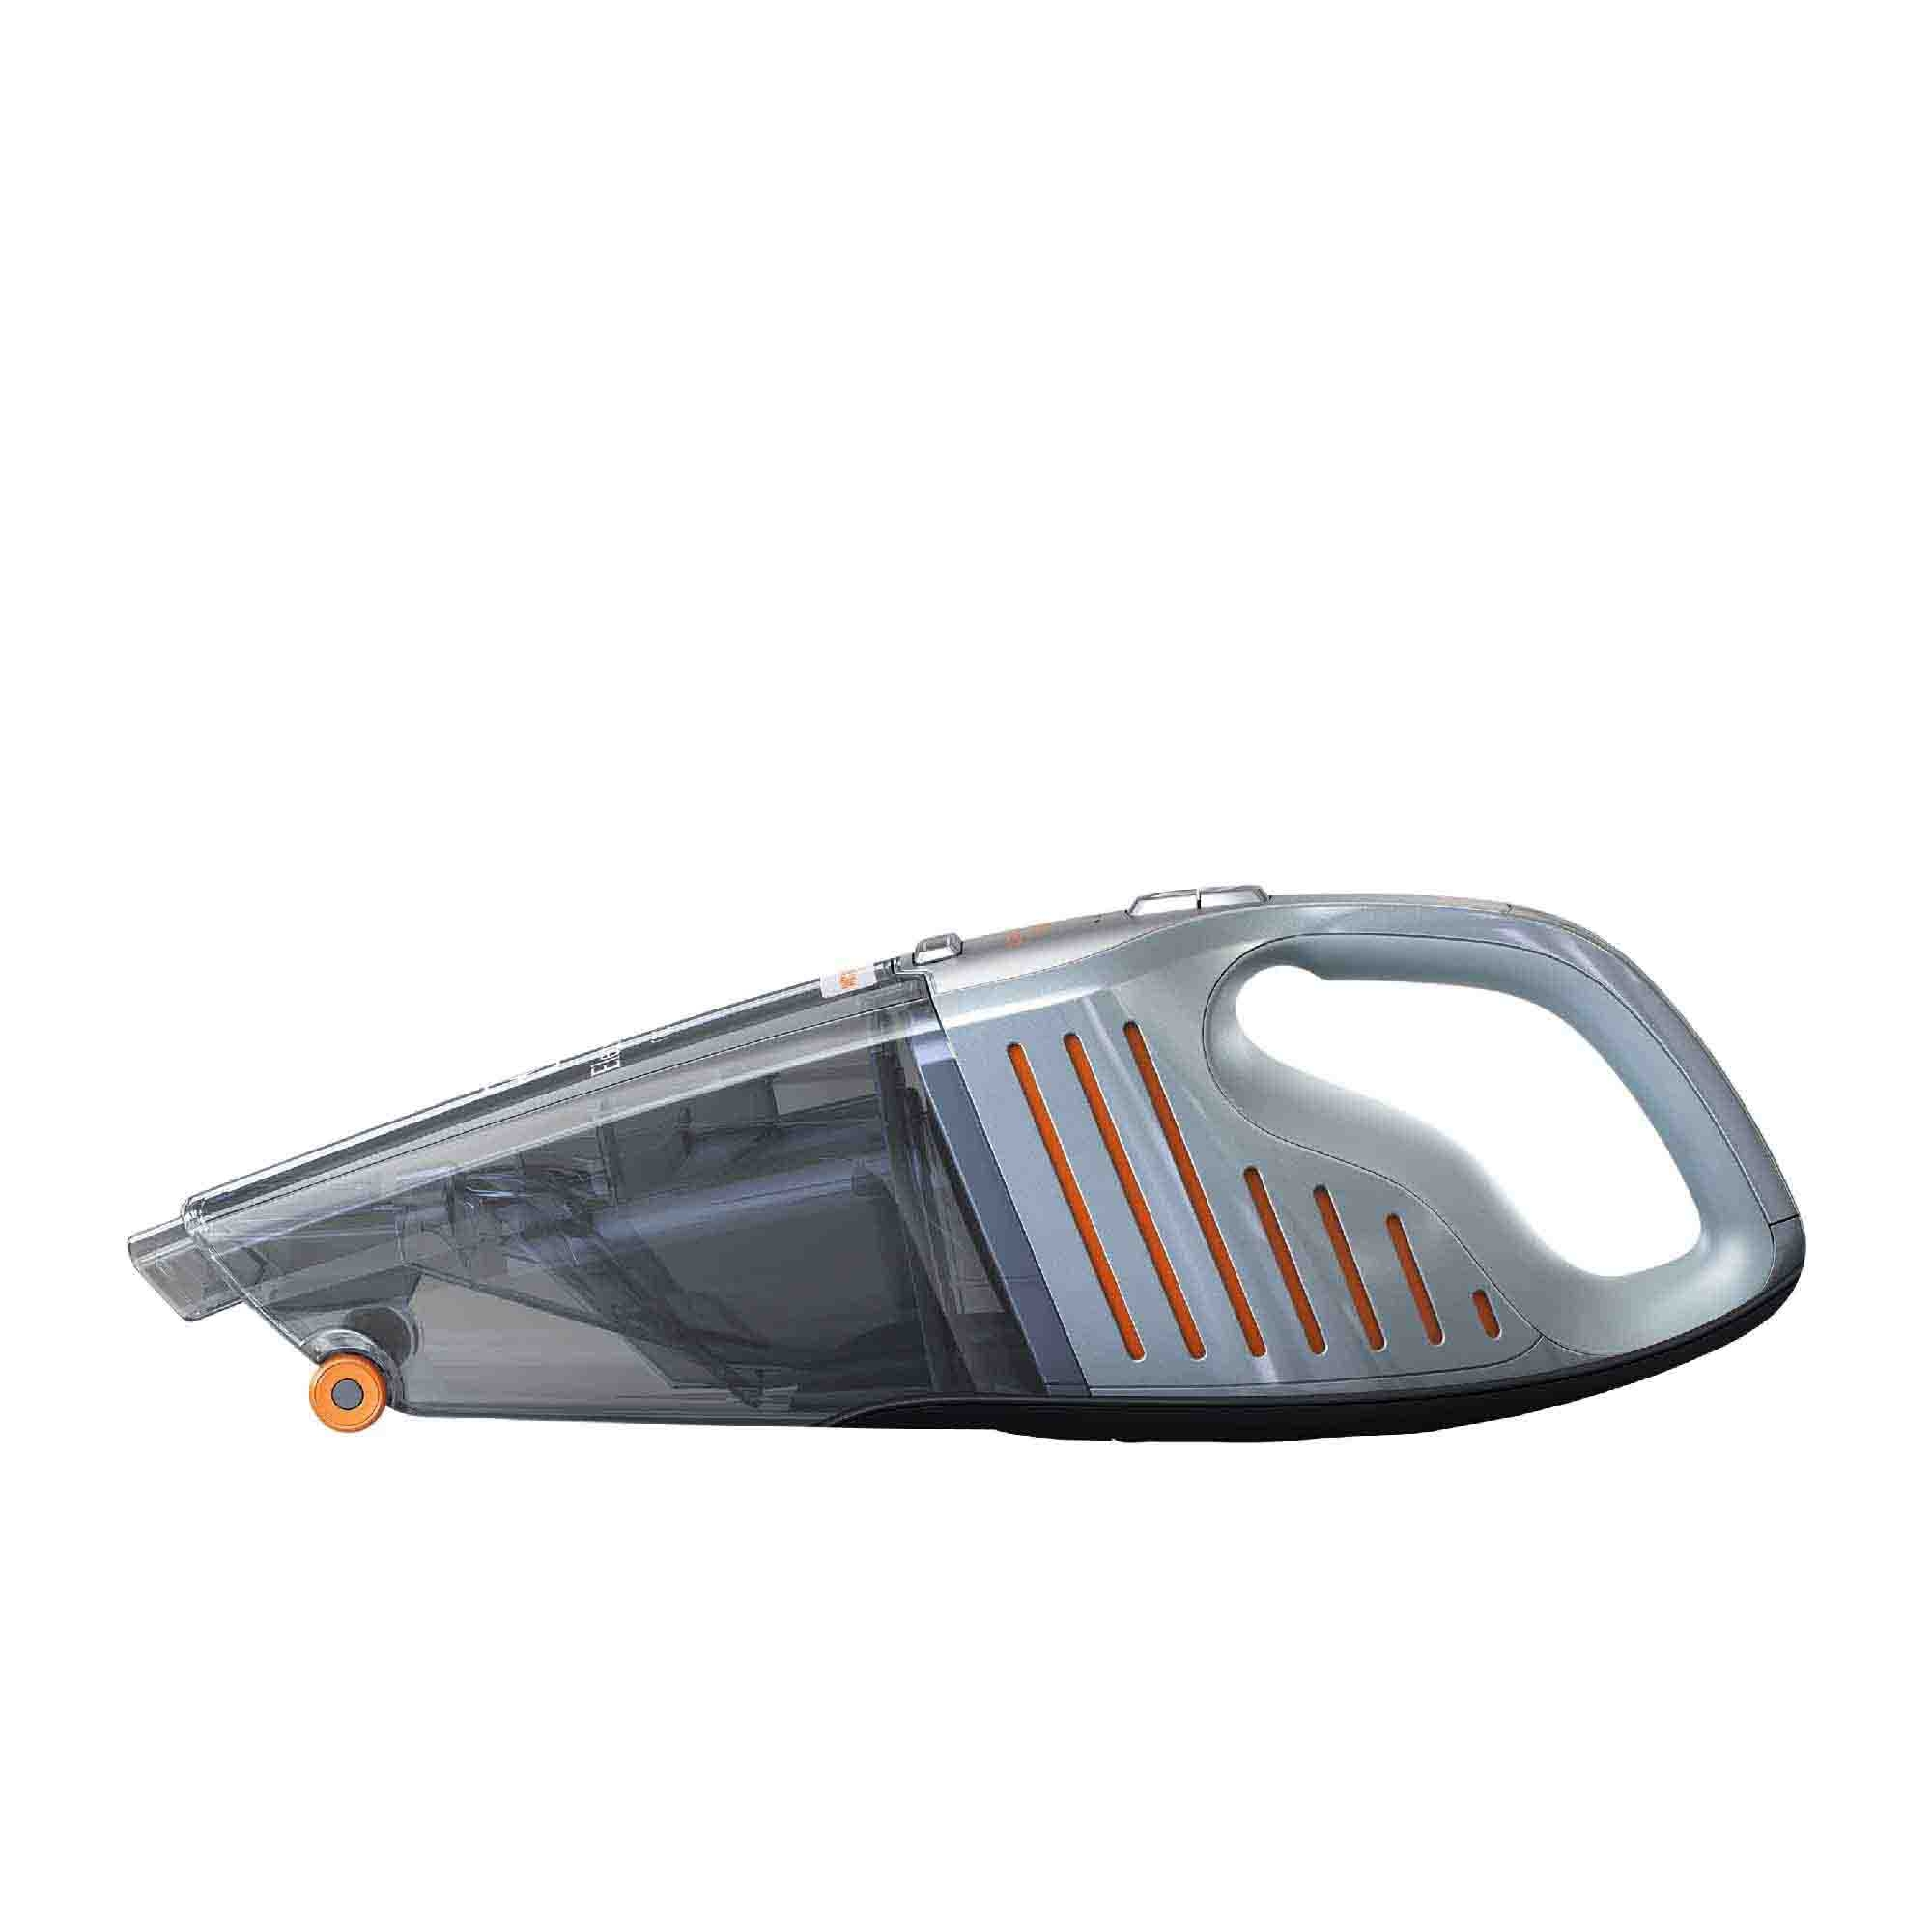 electrolux handheld vacuum. product description electrolux 7.2 voltage wet and dry bagless handheld vacuum t